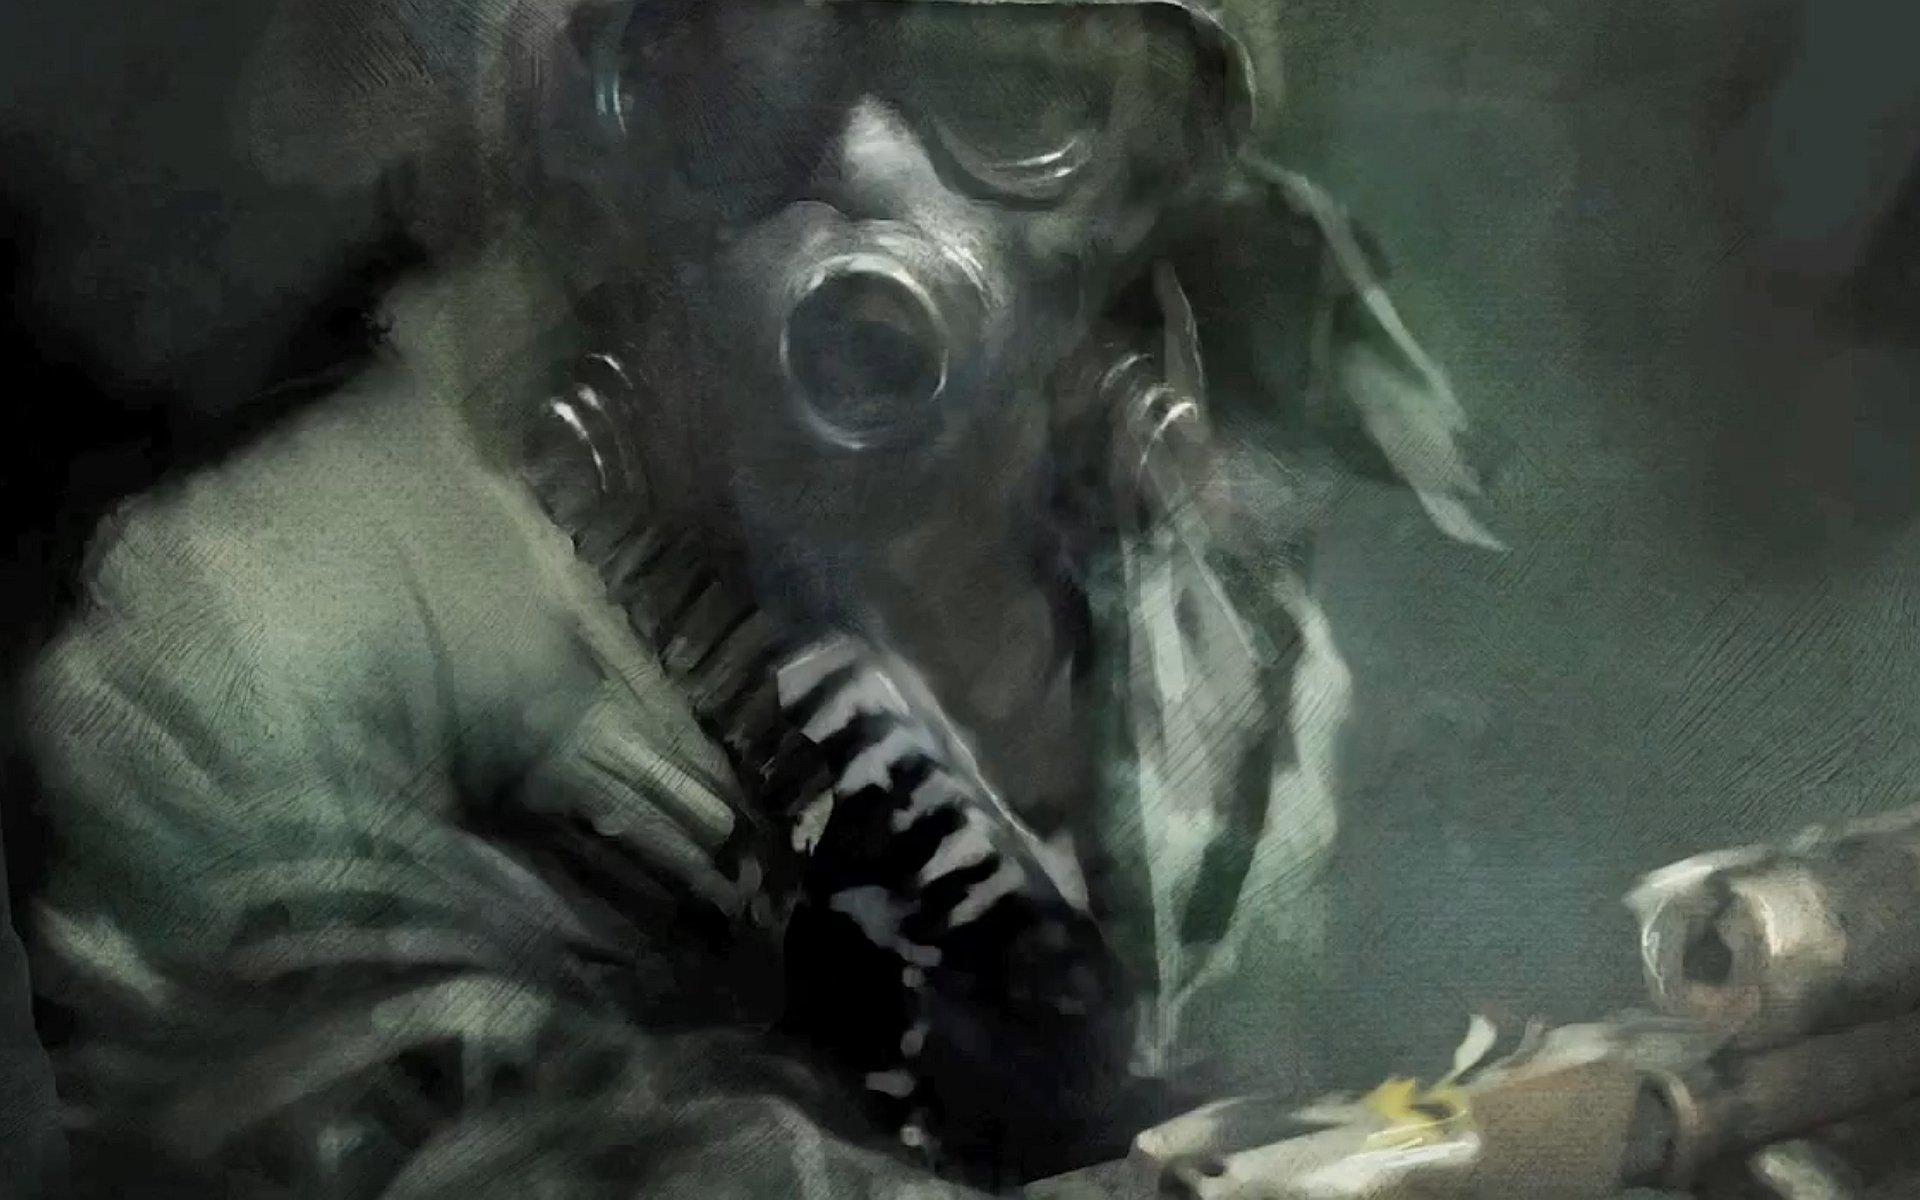 Hd Game Wallpaper Widescreen Metro Last Light Full Hd Wallpaper And Background Image